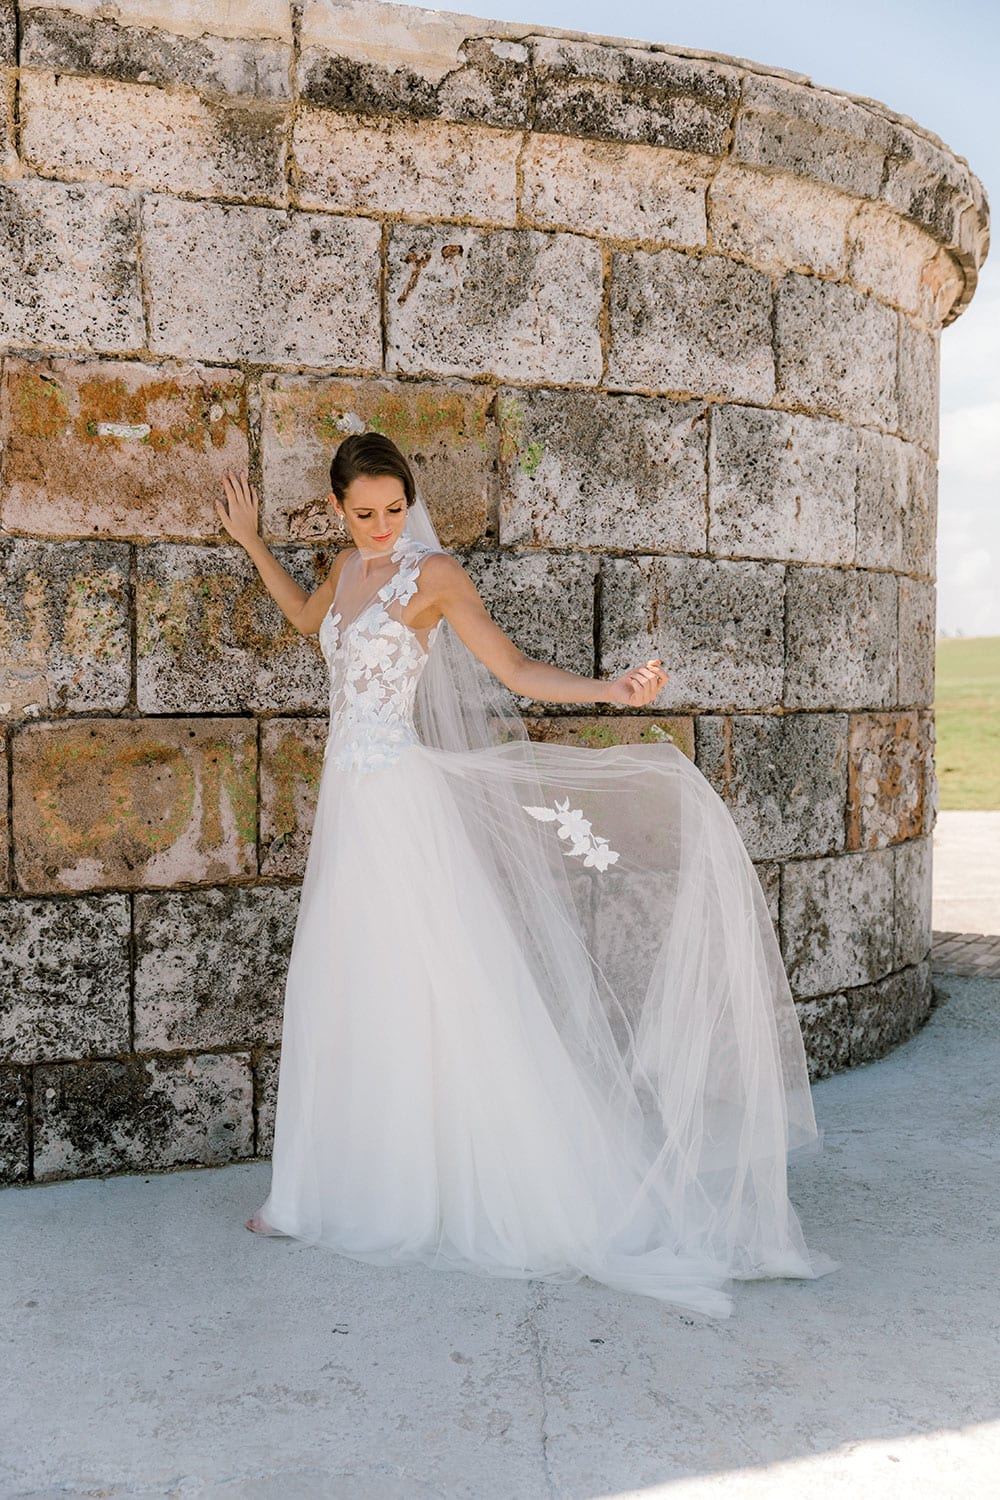 Model wearing Vinka Design Julia Wedding Dress, a High Neck Tulle Wedding Gown posed by an old wall in Havana